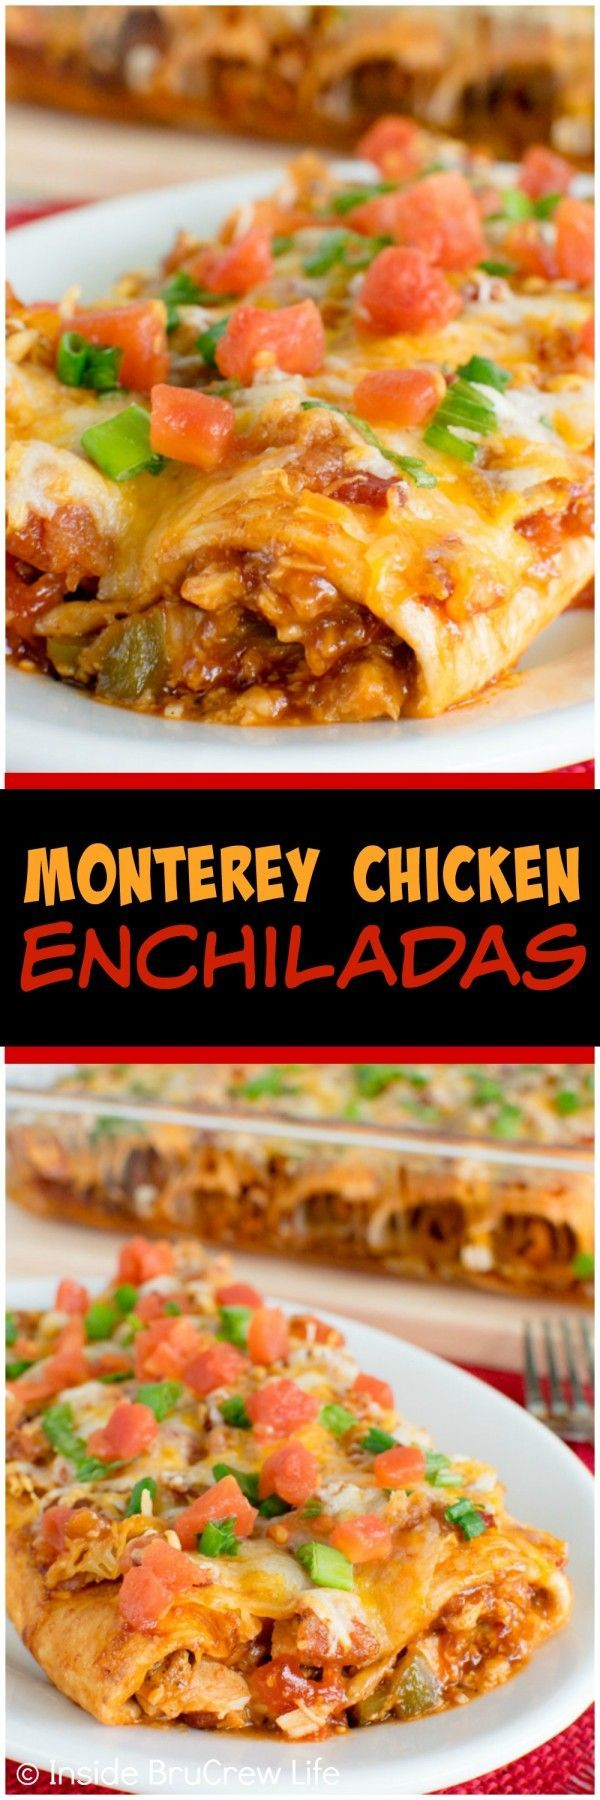 Monterey Chicken Enchiladas - cheese, bacon, and barbecue chicken add a great flavor to these easy enchiladas!  Awesome 30 minute dinner recipe!